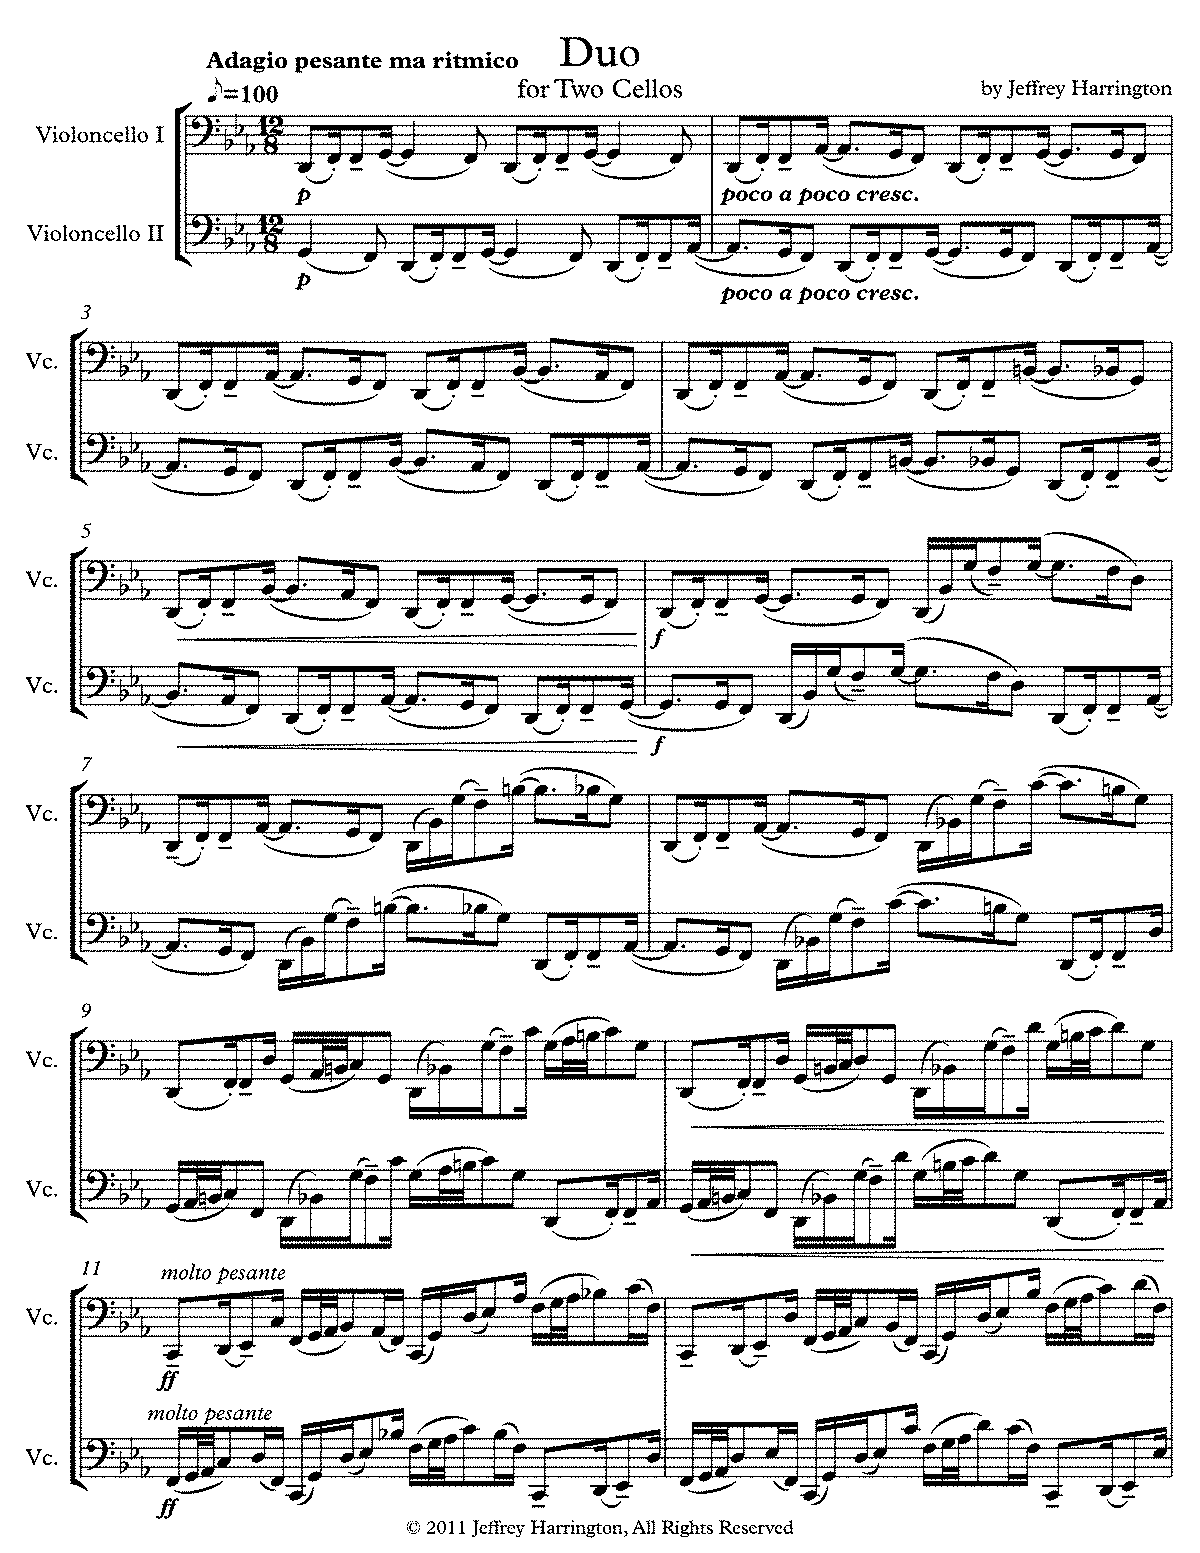 PMLP252889-duo for two cellos score.pdf